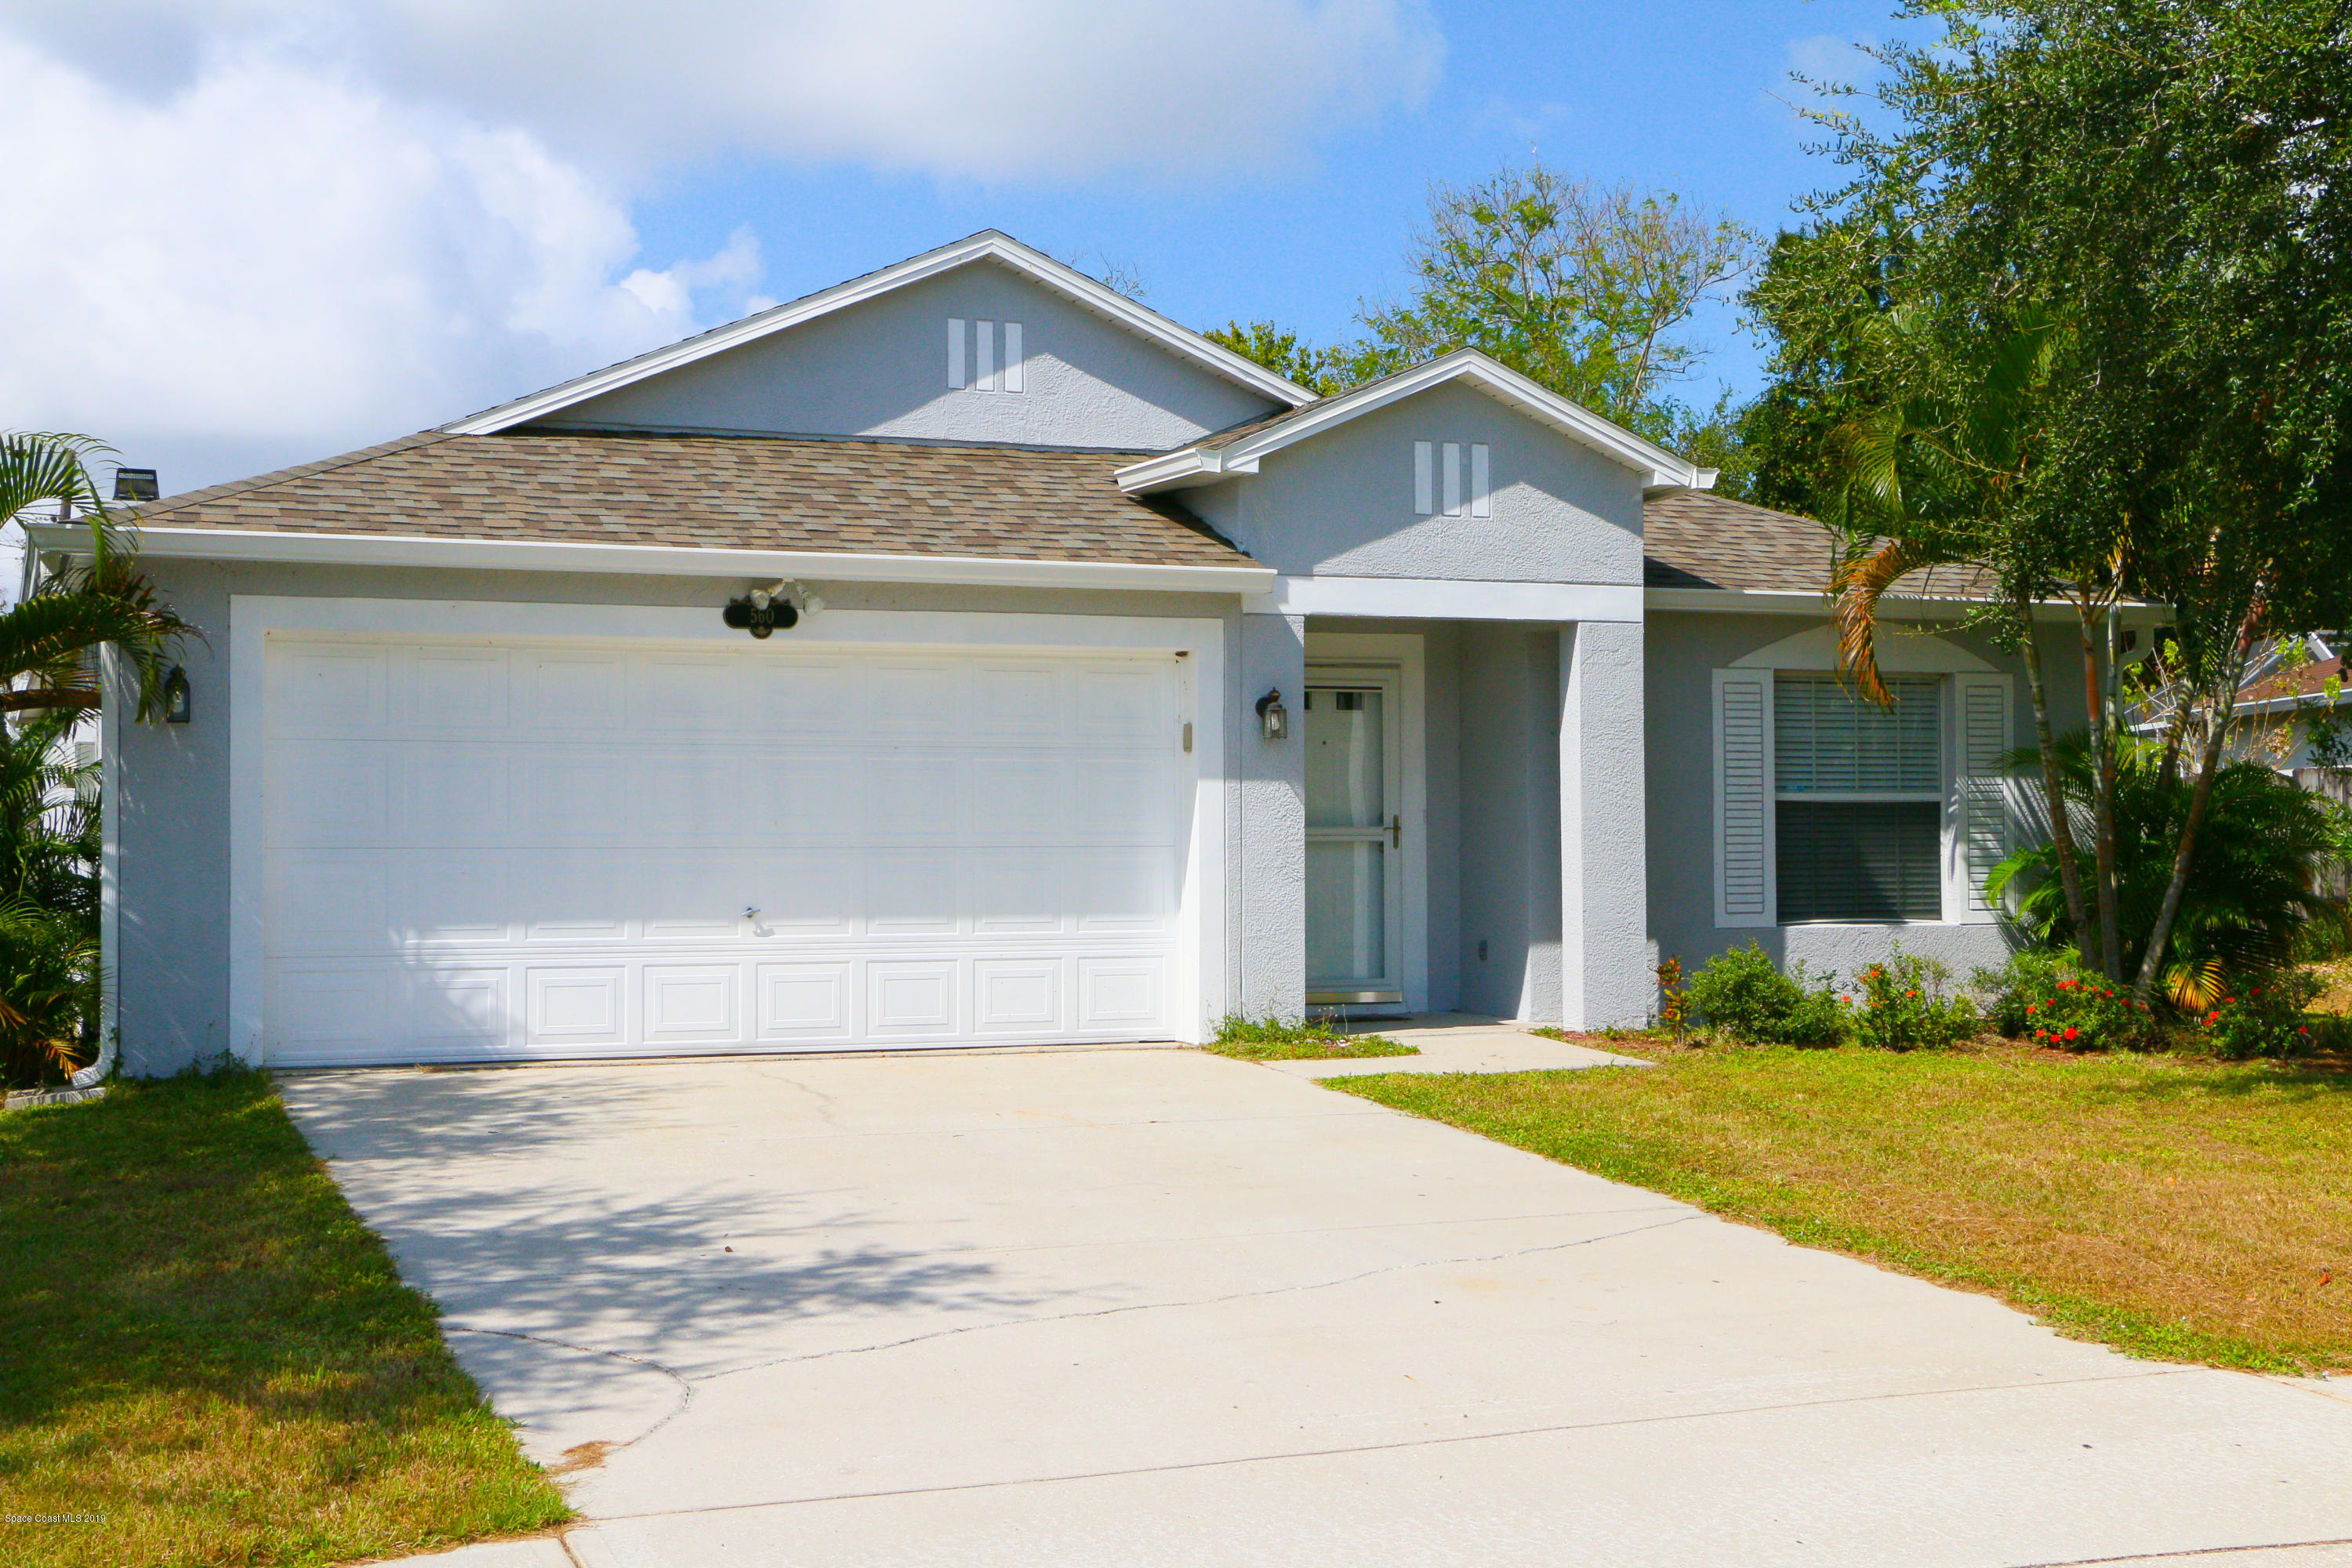 Single Family Homes for Rent at 560 Creston Melbourne, Florida 32901 United States